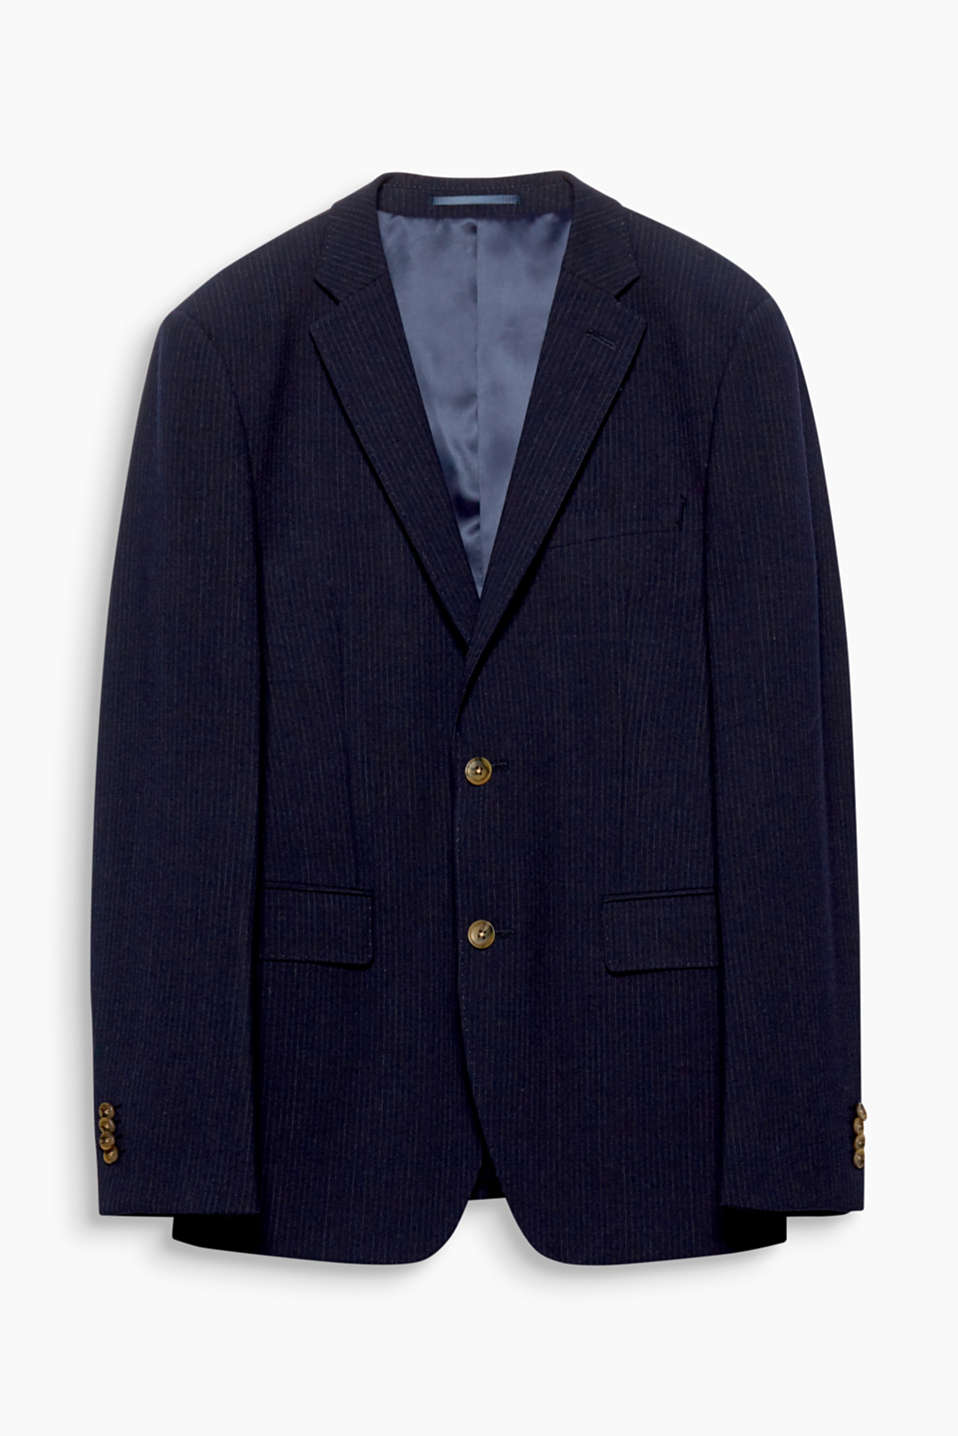 Pinstripes are an elegant perennial fashion trend! This sports jacket is defined by its high-quality wool blend.